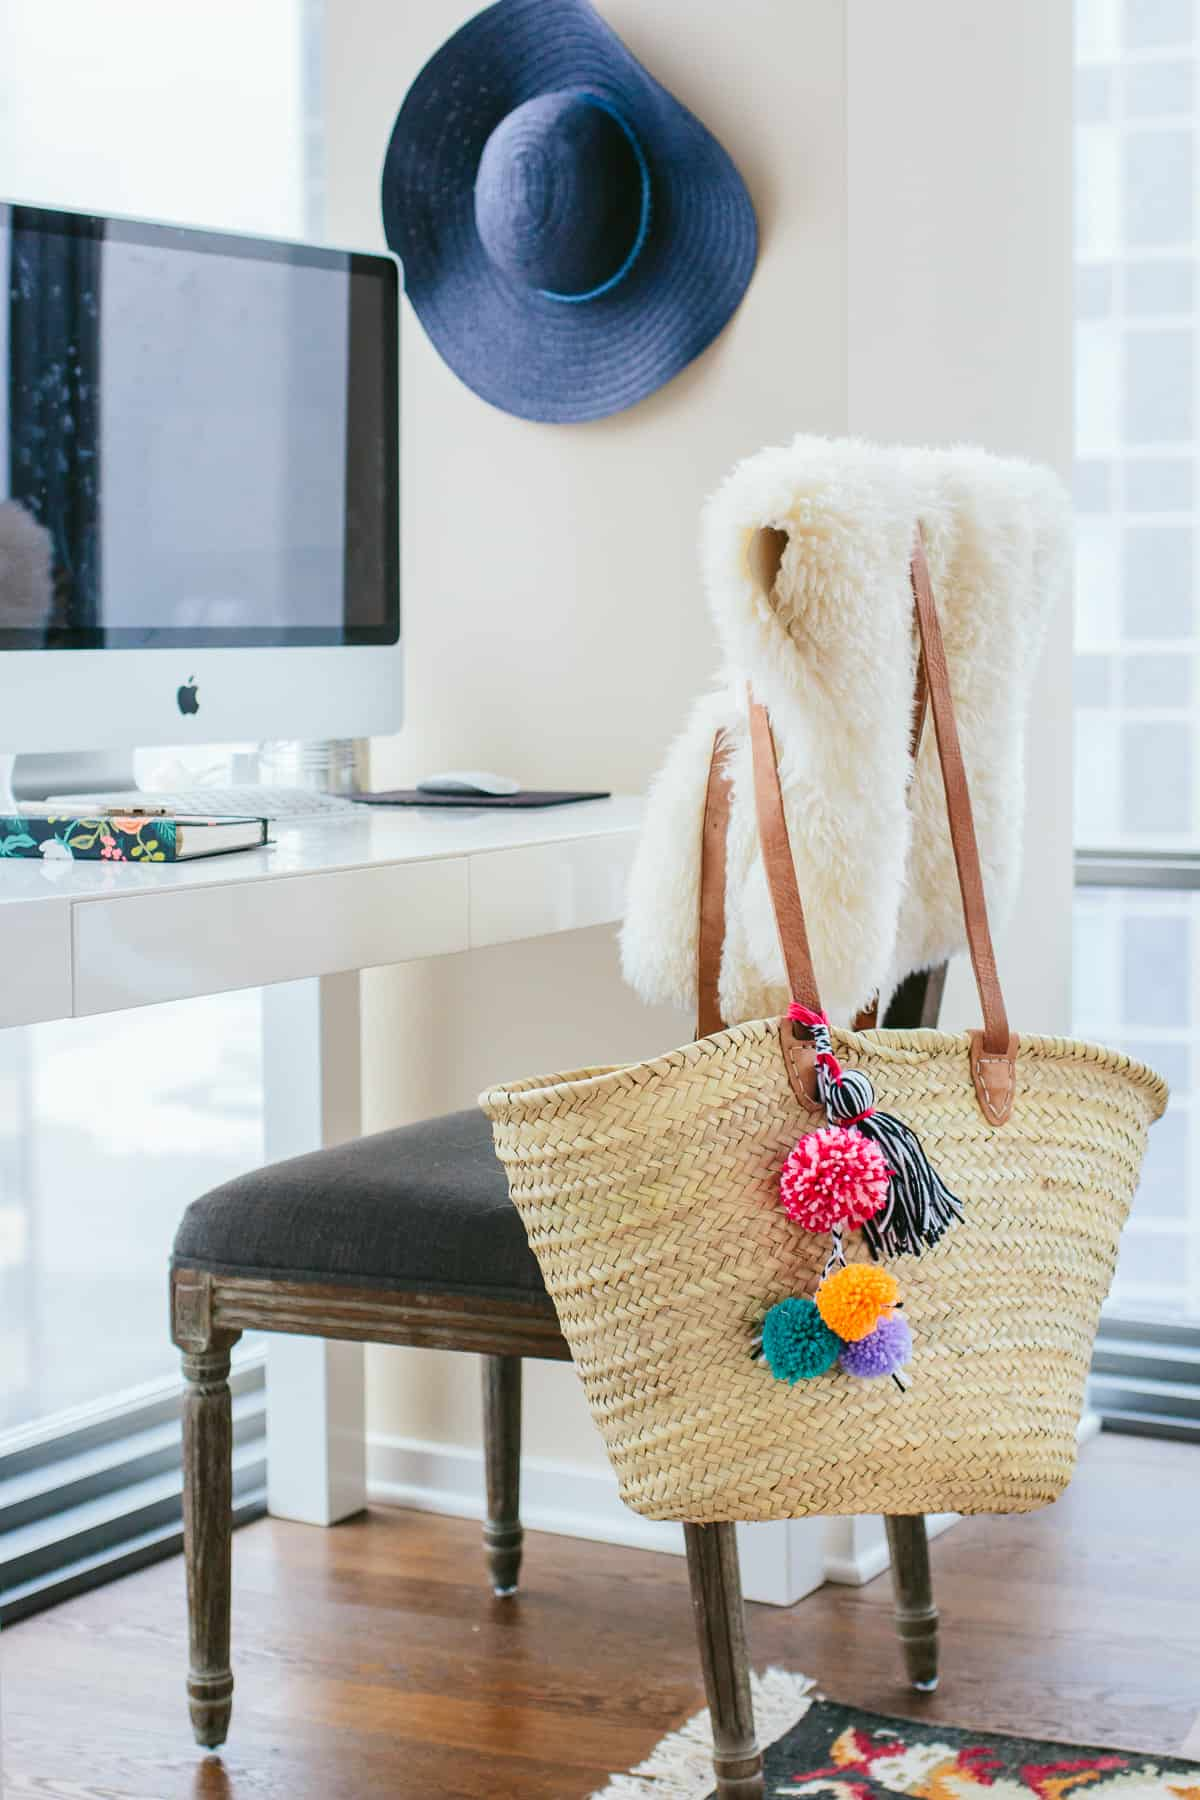 pom poms straw beach bag